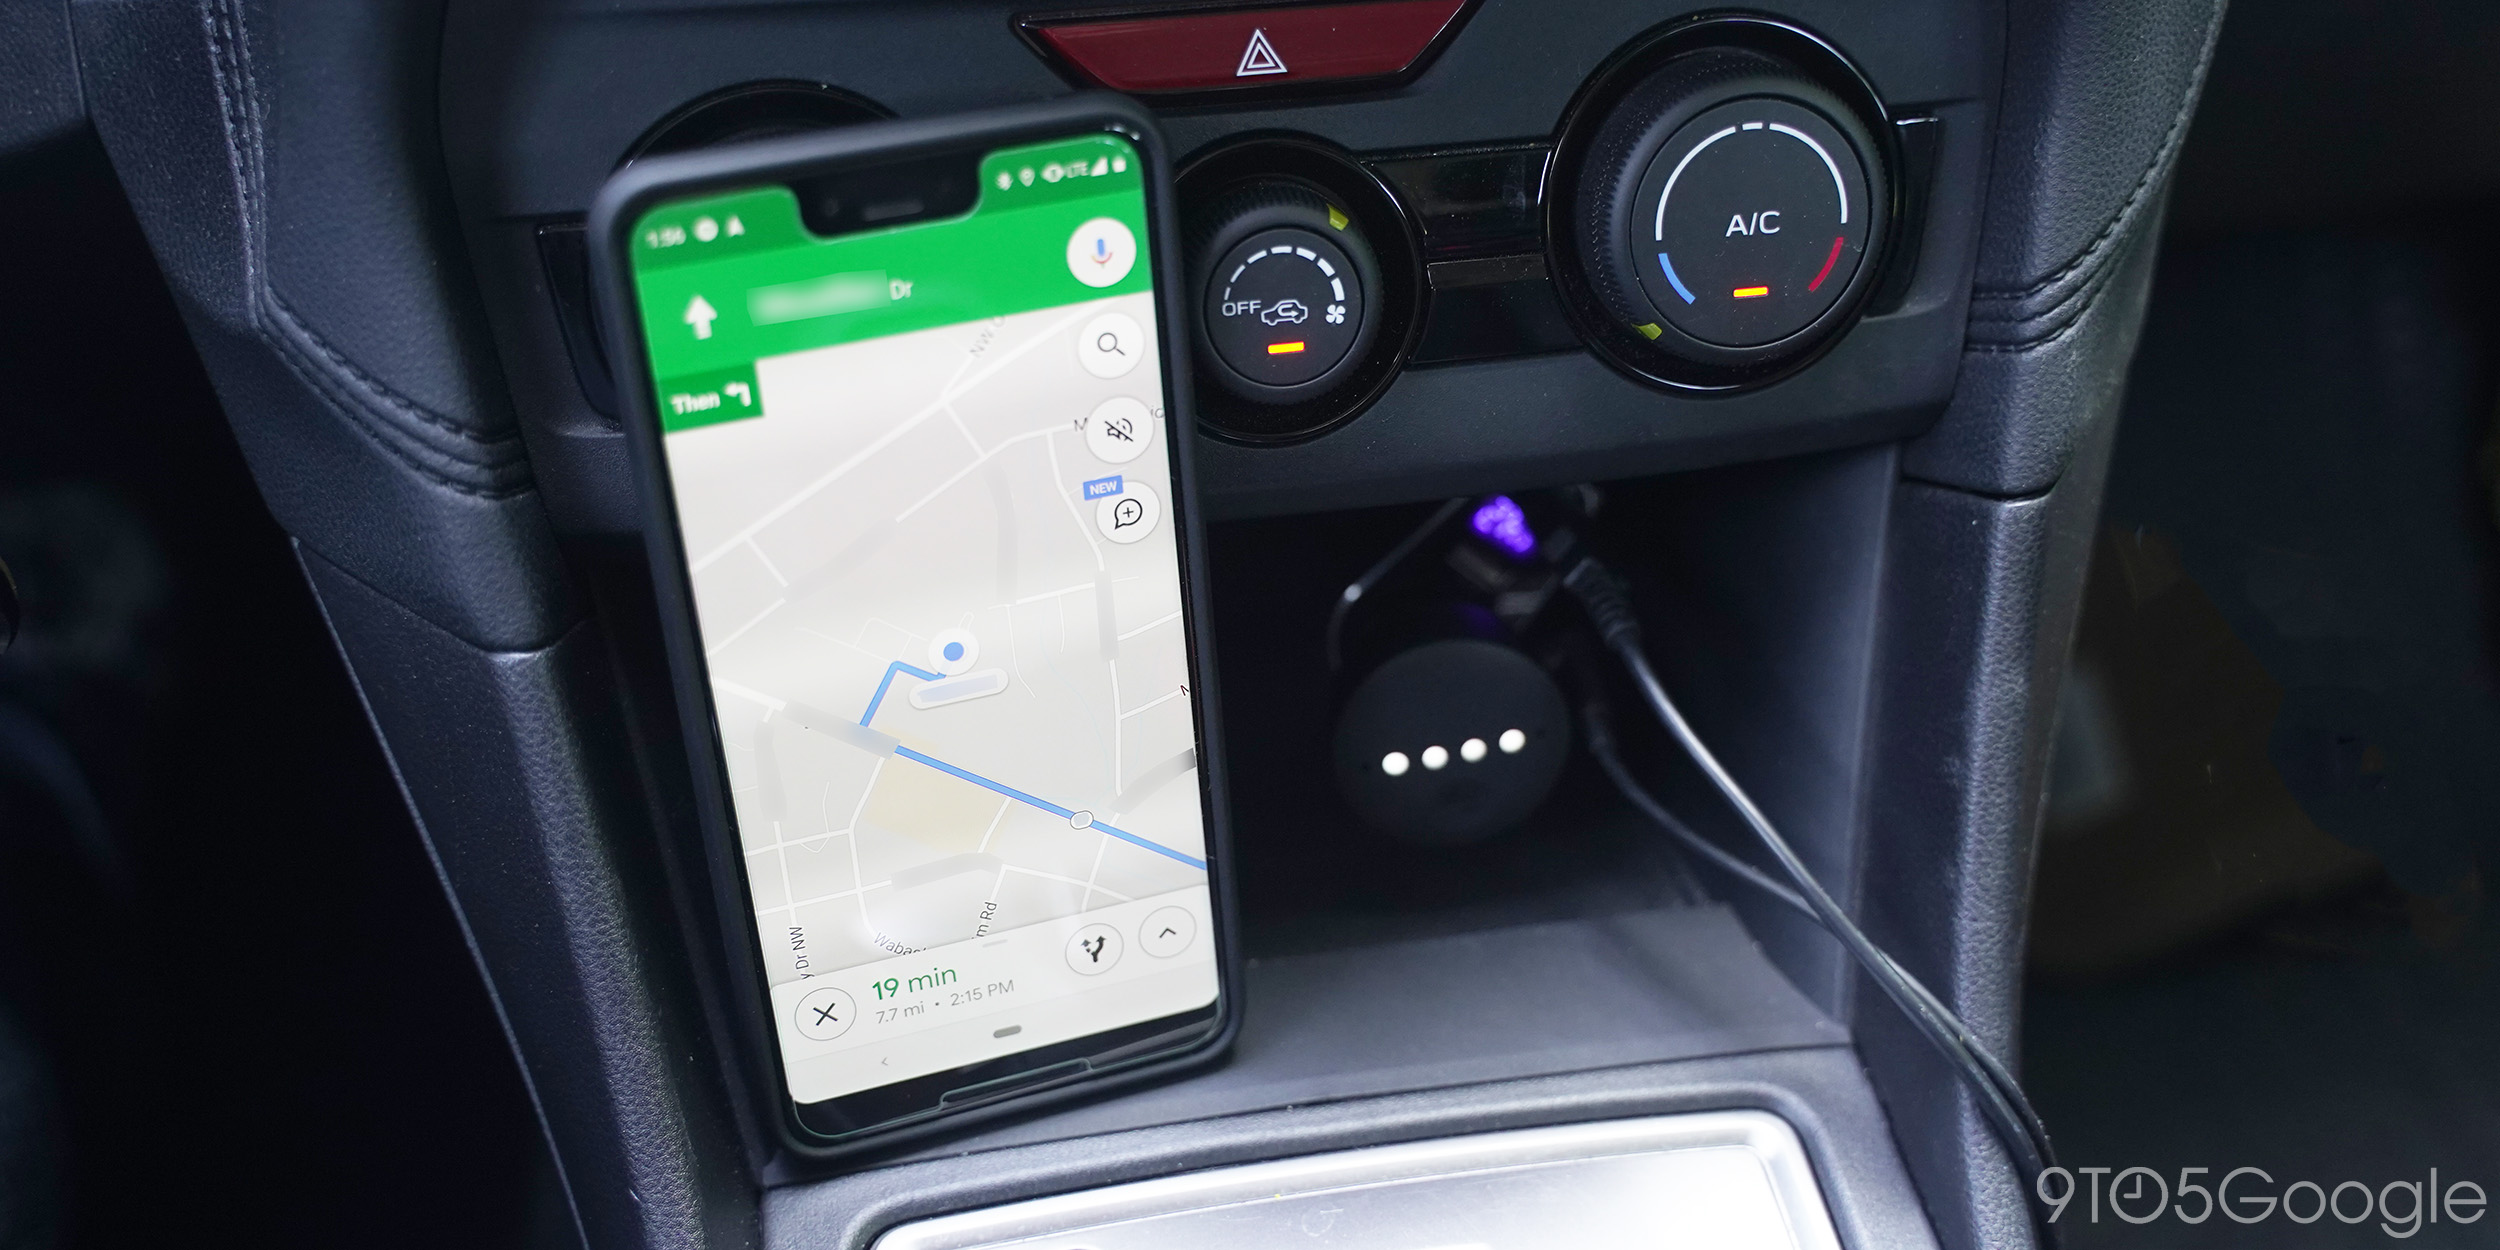 Review: Anker Roav Bolt brings Google Assistant to your car